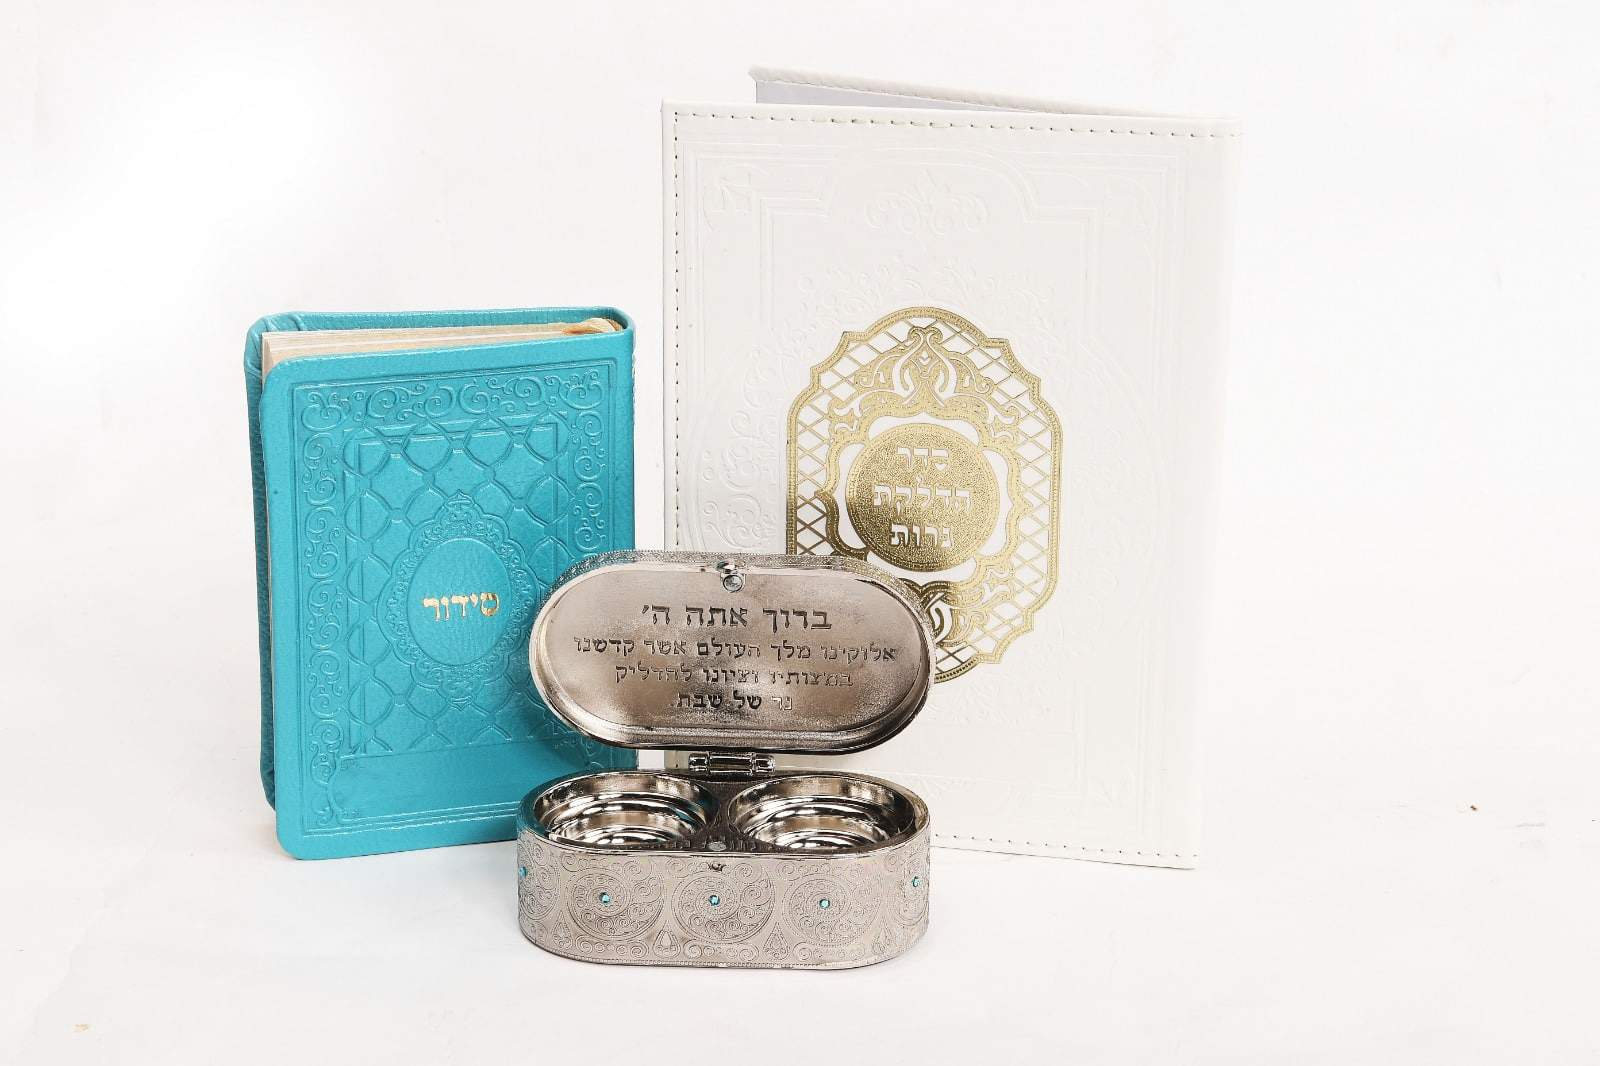 Bat Mitzvah Gift Set - Silver Candlestick Holders, Sabbath Booklet with Leather Cover and Siddur Kavanat Halev Jewish Prayer Book